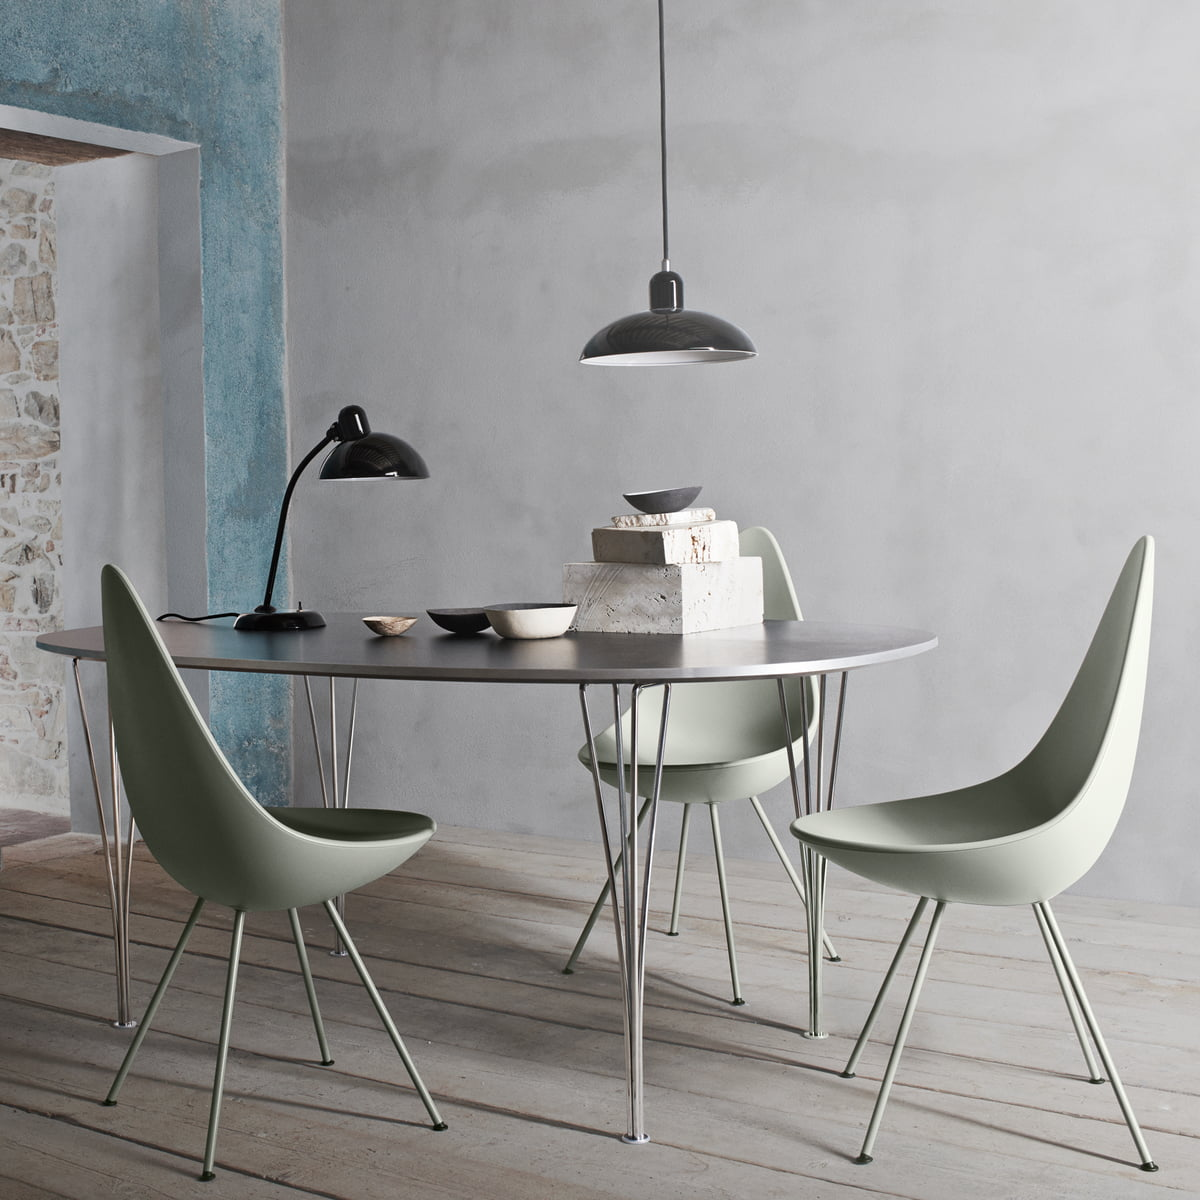 hansen lighting services. fritz hansen - drop chair lighting services i